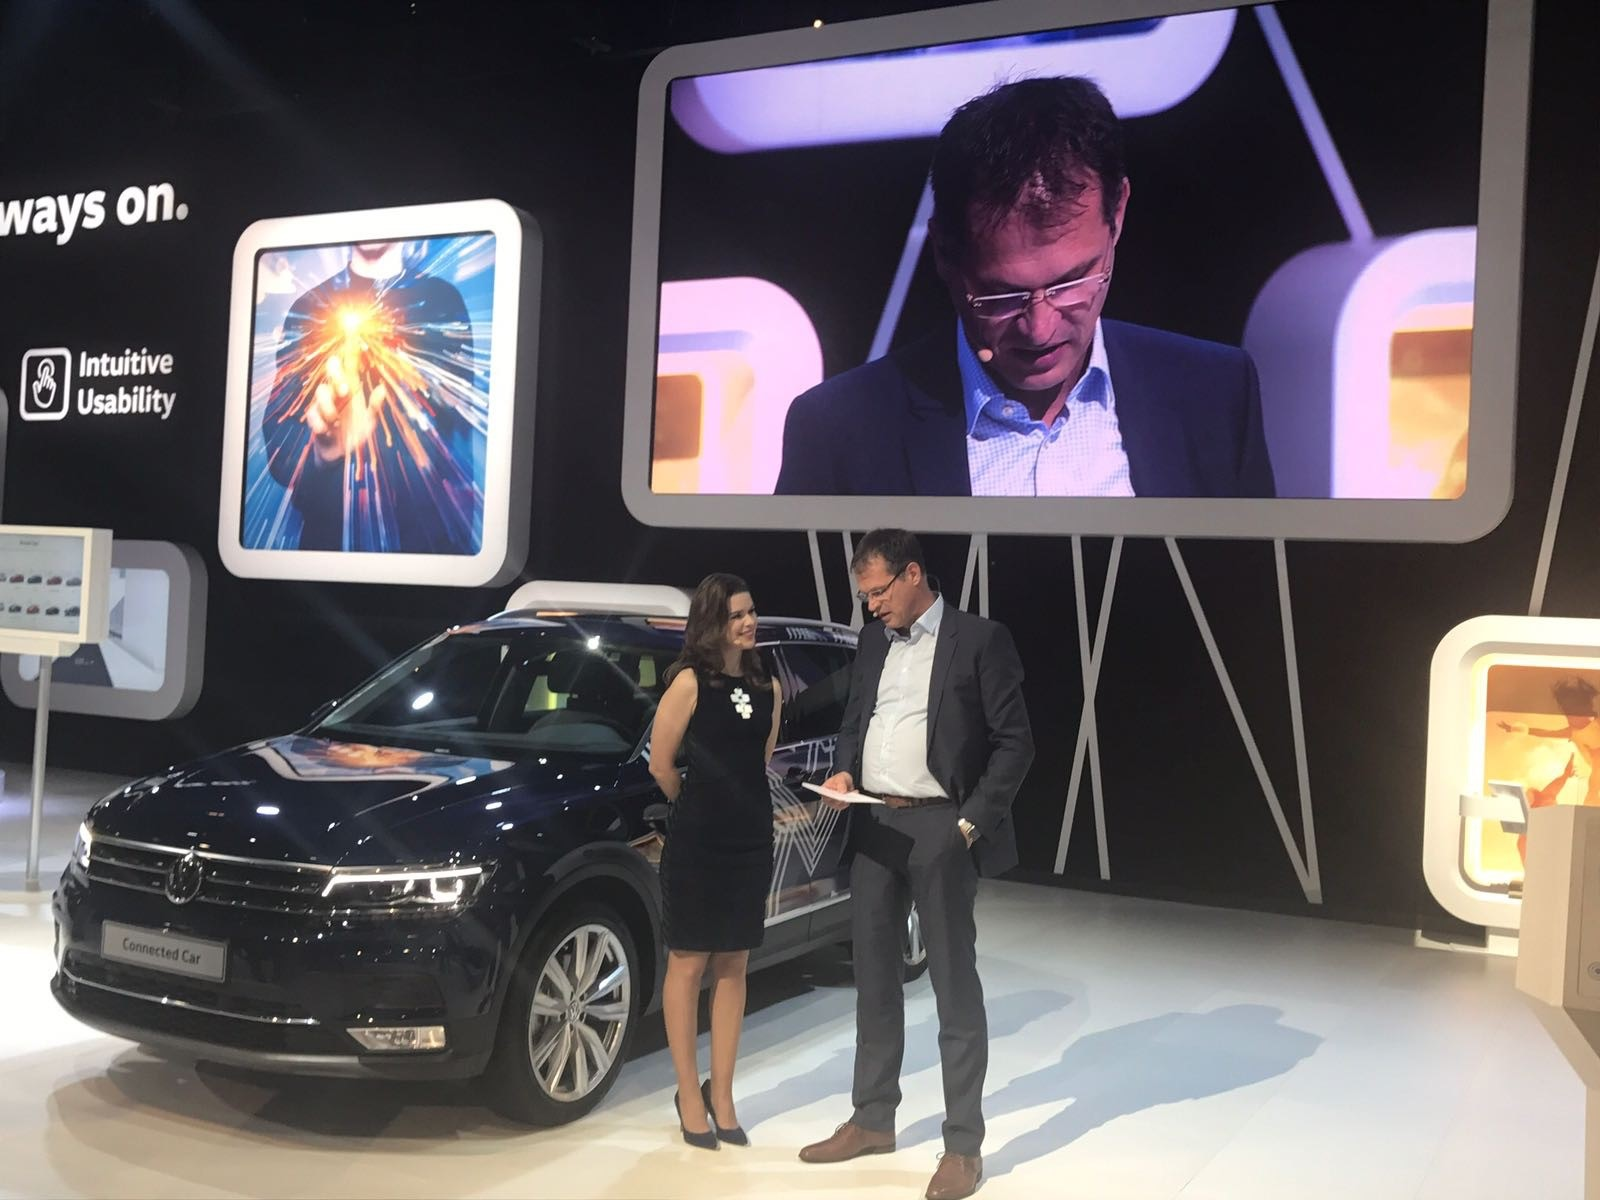 Dr Volkmar Tanneberger, Head of Electrical and Electronic Development at Volkswagen duing Volkswagen's press conference at CES 2017. Volkswagen focused it's presentation on connectivity developments in its cars.